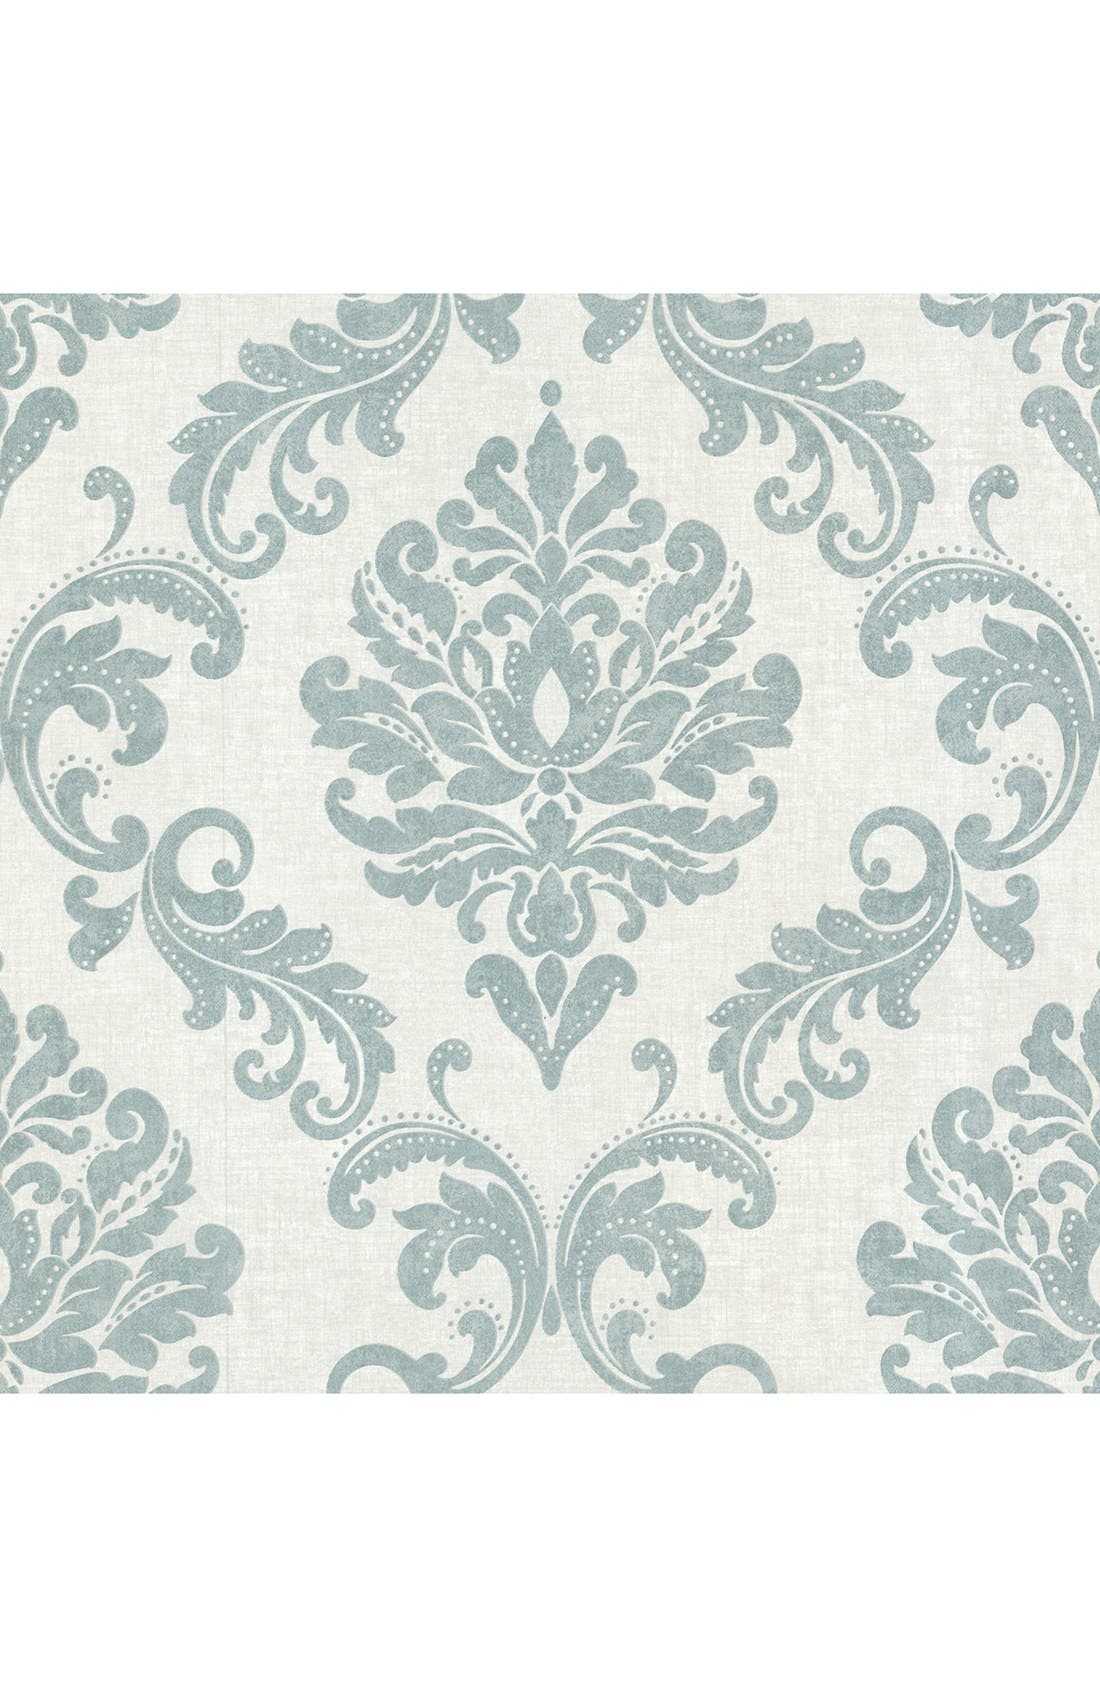 'Sebastion Damask' Unpasted Wallpaper,                             Main thumbnail 2, color,